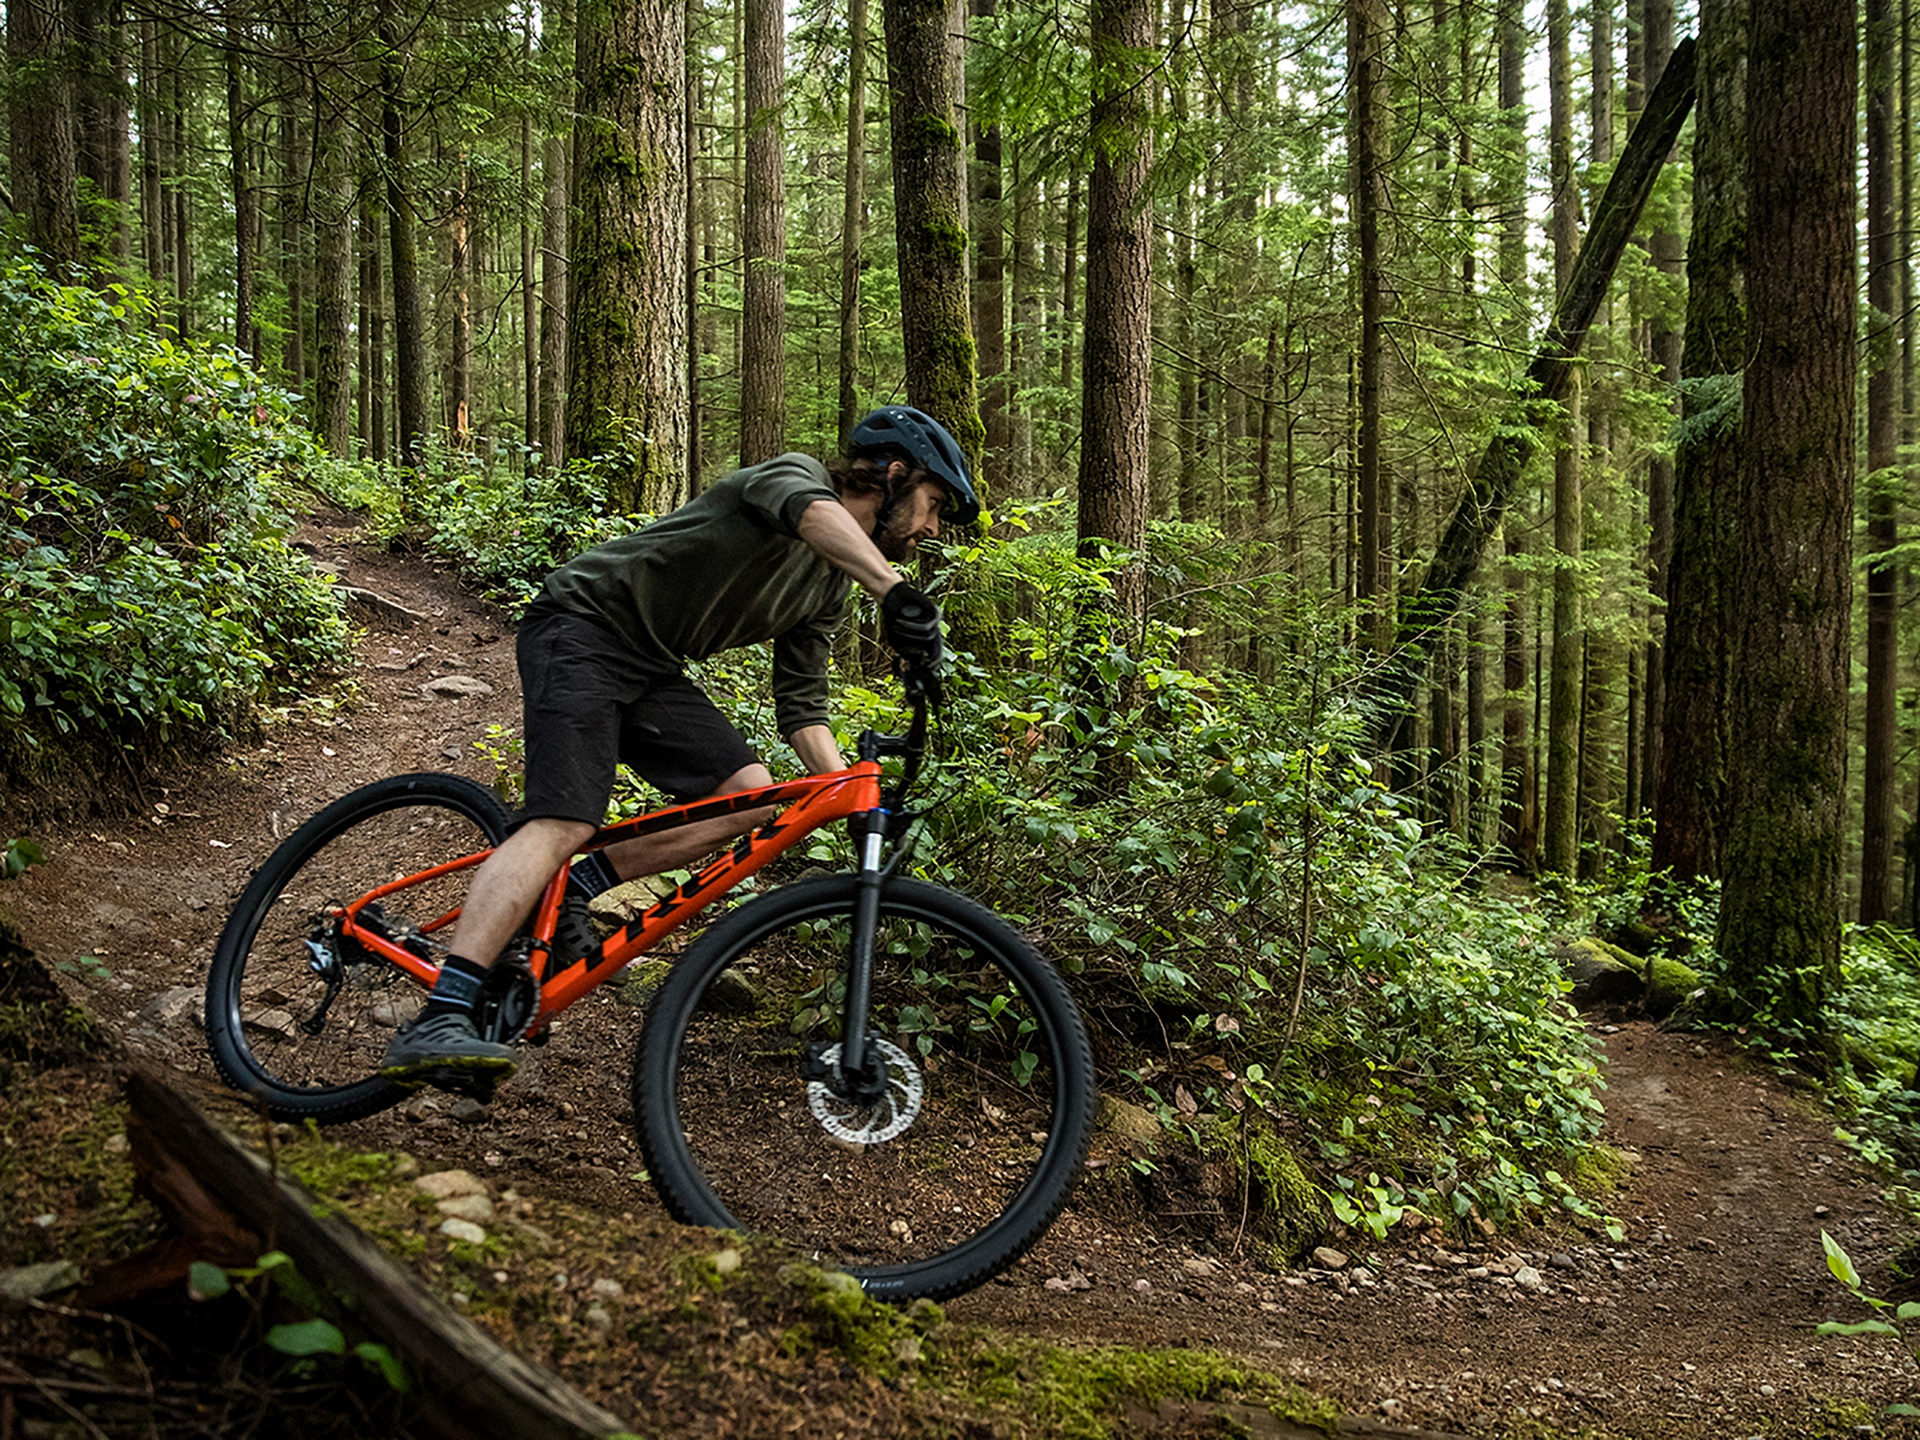 Trek Marlin 5 trail bike